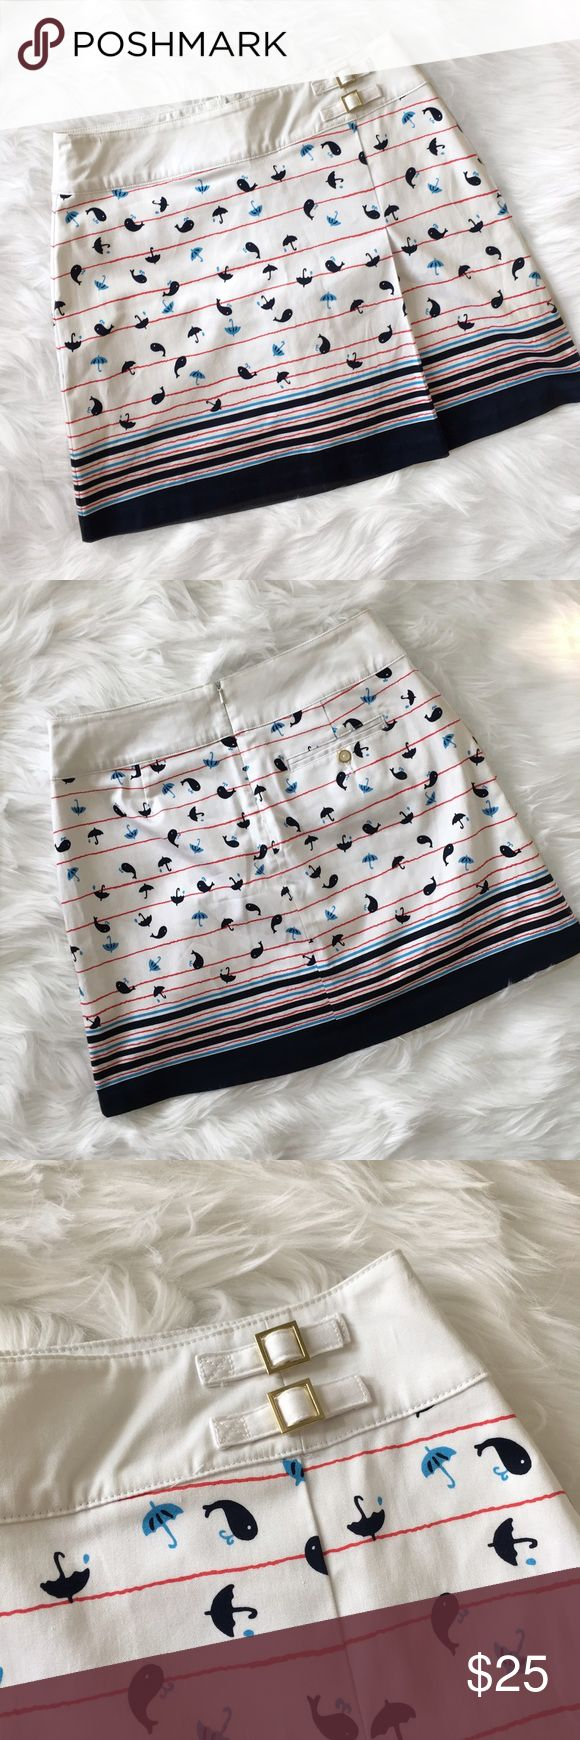 Lady Hagen Whale Print Golf Skort Lady Hagen Whale print golf skort. It's a skirt with built in shorts. One pleat in the front and a buckle detail at the top. In very good condition. Tag says size 2 but fits more like a 4. The waist is 14.5 inches and it is 16 inches long.   ⭐️10% off 2+ bundle  ⭐️Size 2  ⭐️Smoke free home  ⭐️No stains or flaws Lady Hagen Shorts Skorts